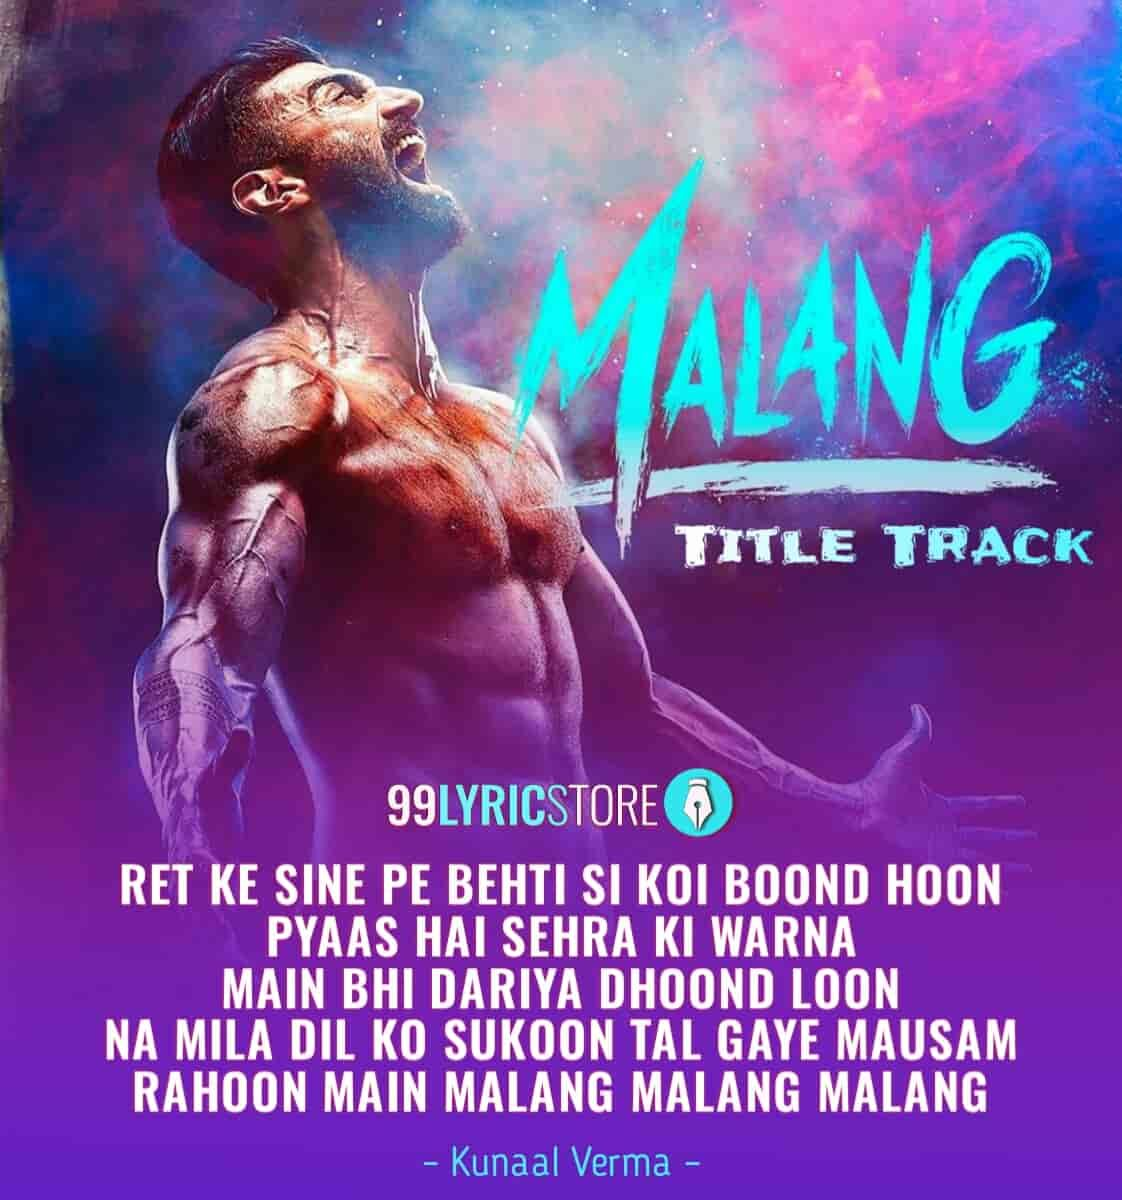 Malang Title Track Lyrics Ved Sharma Aditya Roy Kapoor In 2020 Lyrics Roy Kapoor Song Lyrics